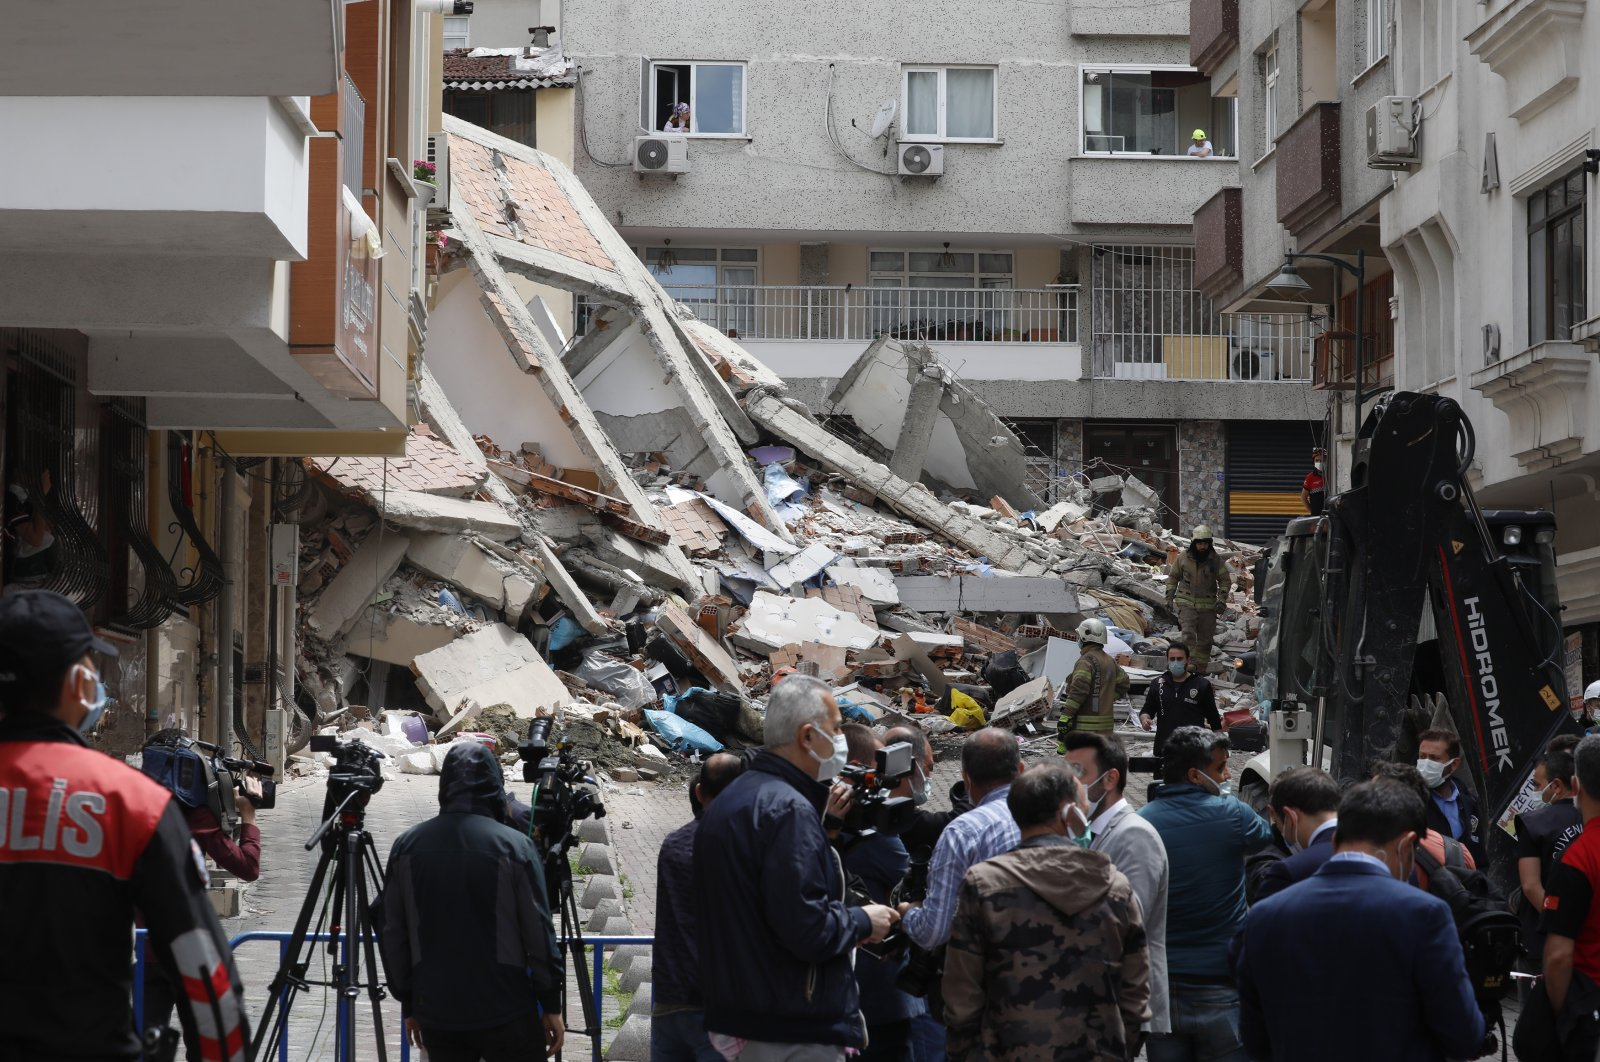 People scan the rubble of a collapsed building, in Zeytinburnu district, Istanbul, Turkey, May 6, 2021. (DHA PHOTO)